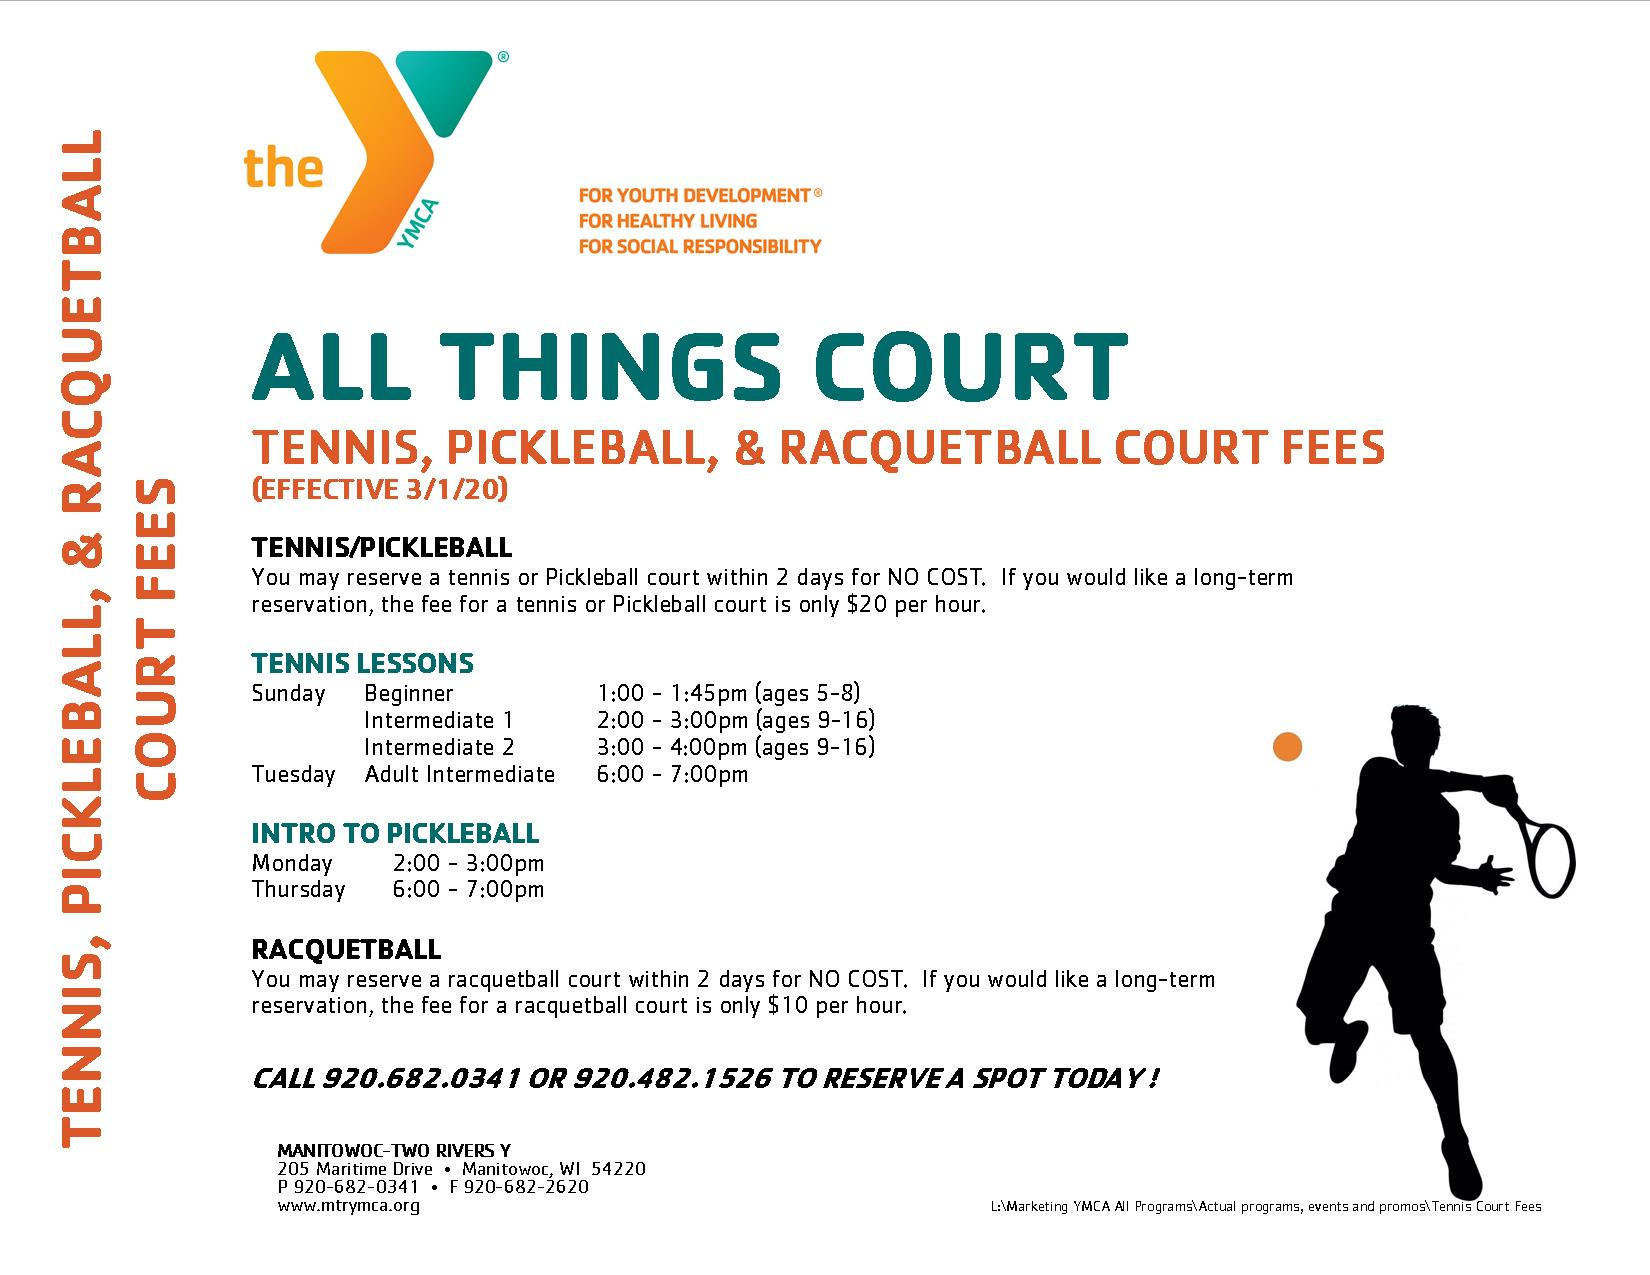 http://mtrymca.org/sites/mtrymca.org/assets/images/programs/Tennis-Court-Fees2020-05-19-0639.jpg